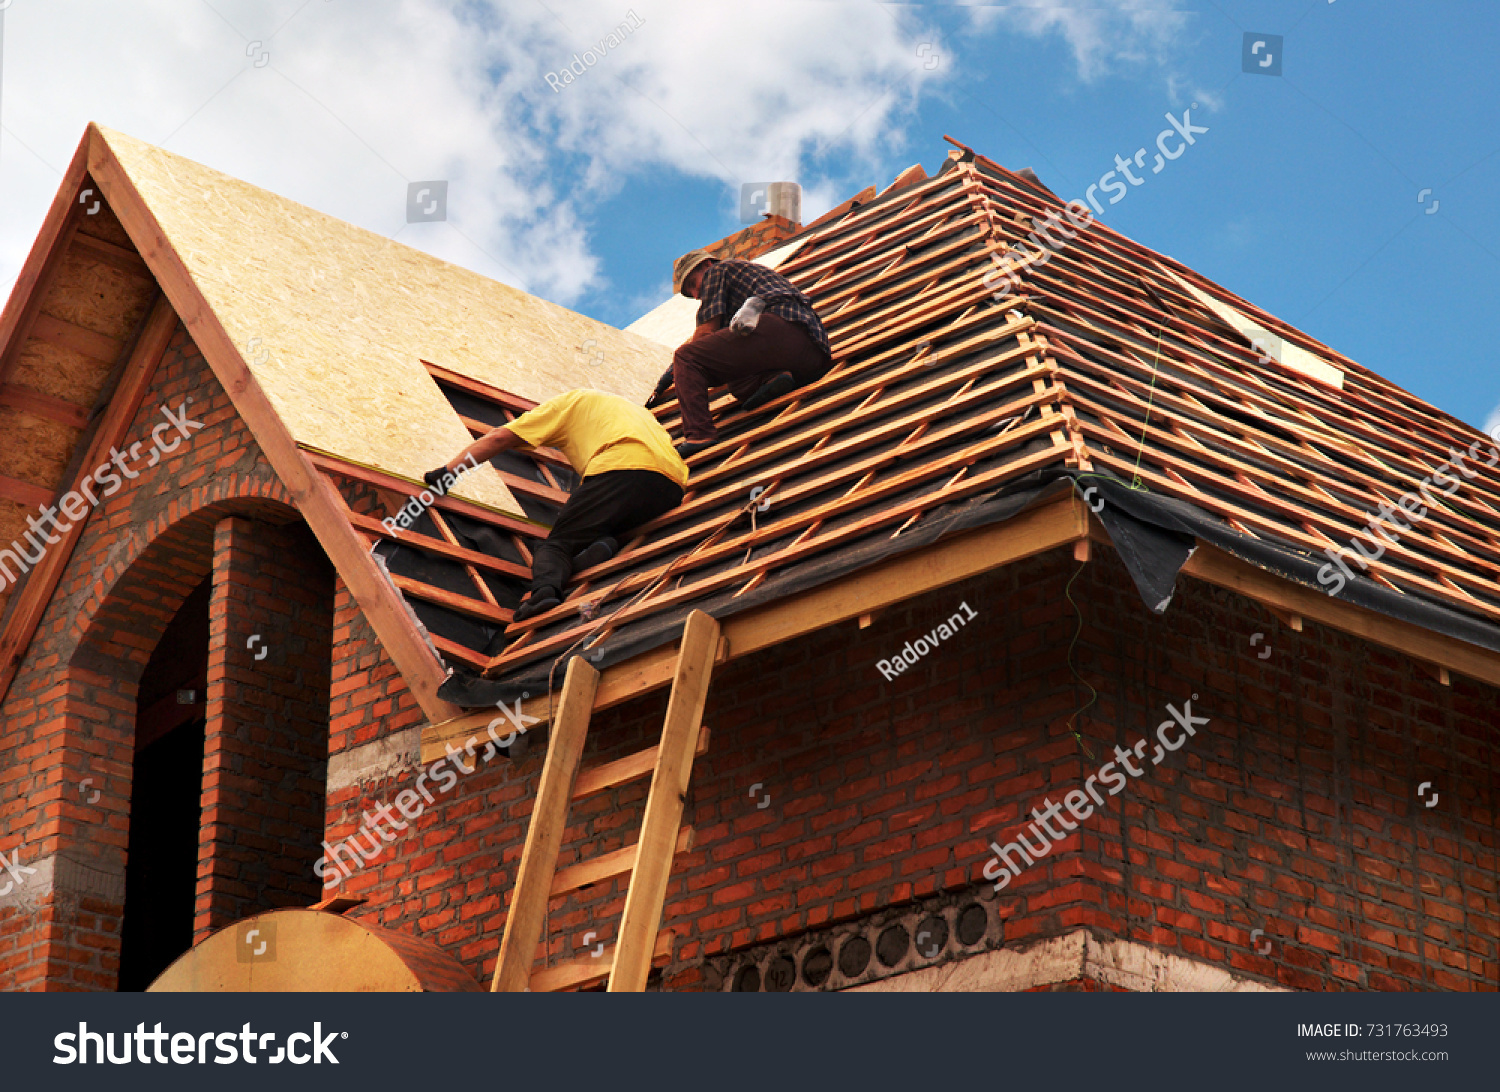 Roofing Contractors Installing House Roof Board For Asphalt Shingles.  Roofing Contractor. Roofing Construction.